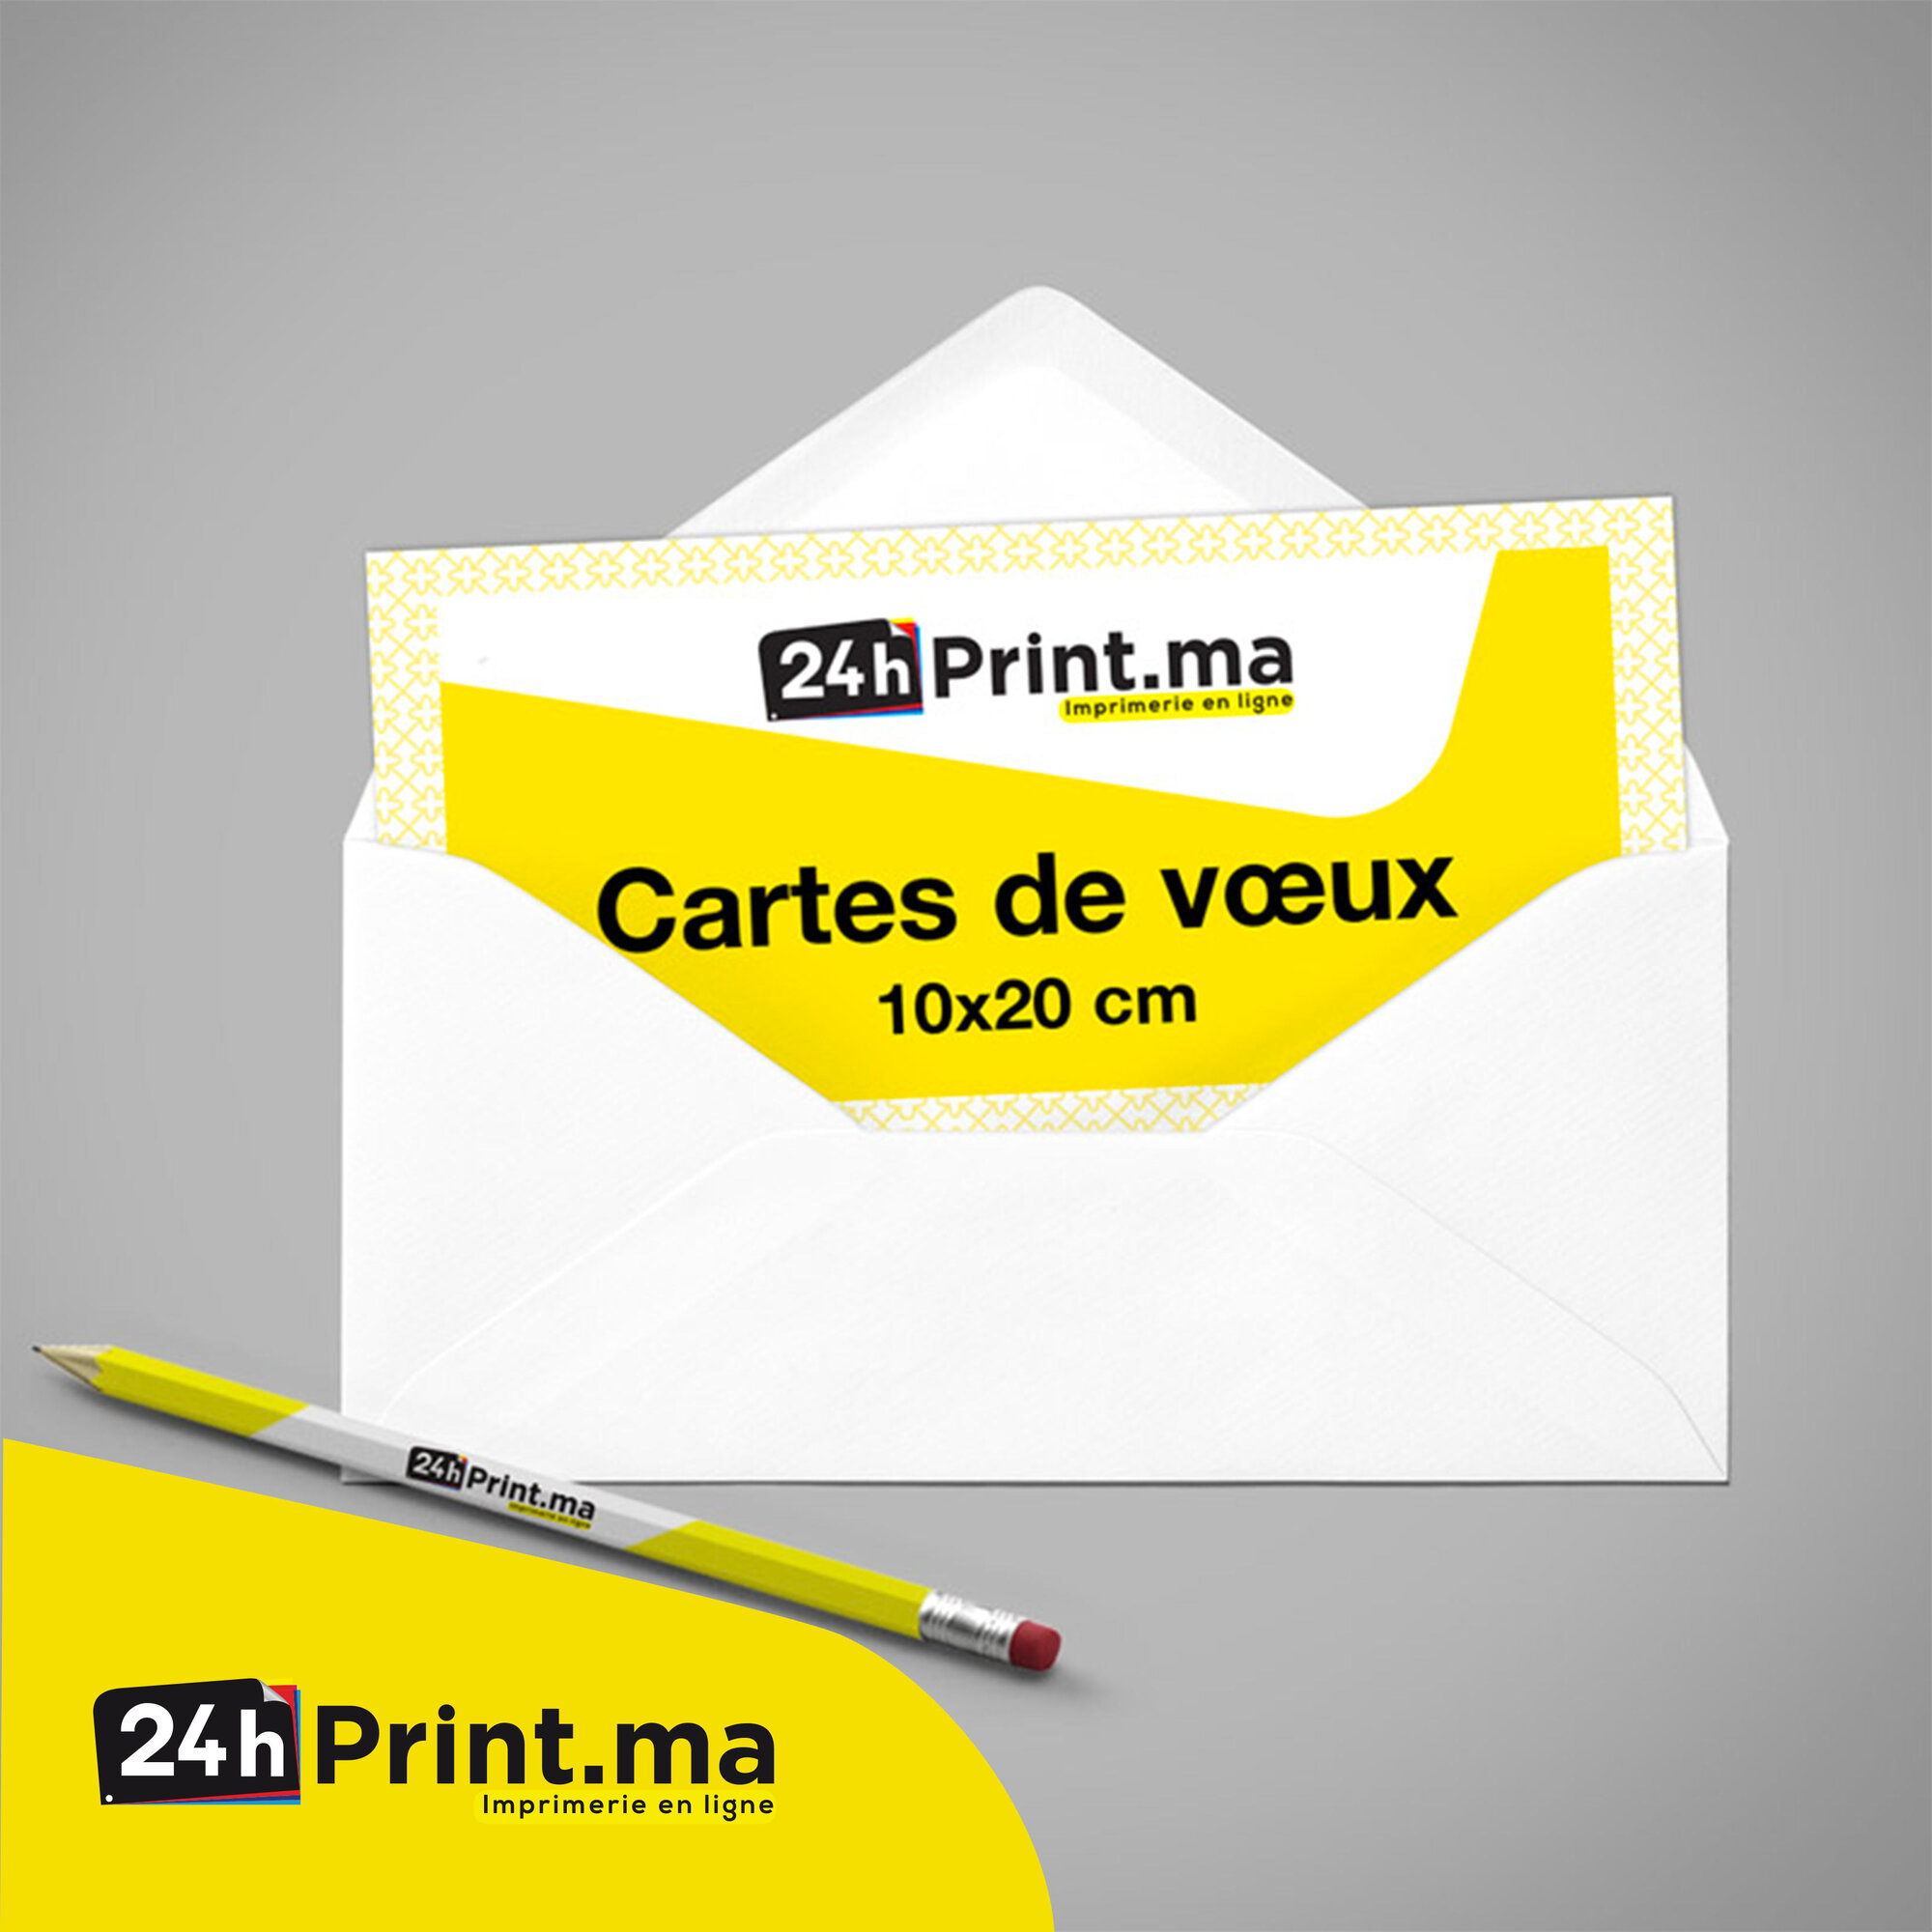 https://www.24hprint.ma/images/products_gallery_images/carte-de-voeux57.jpg